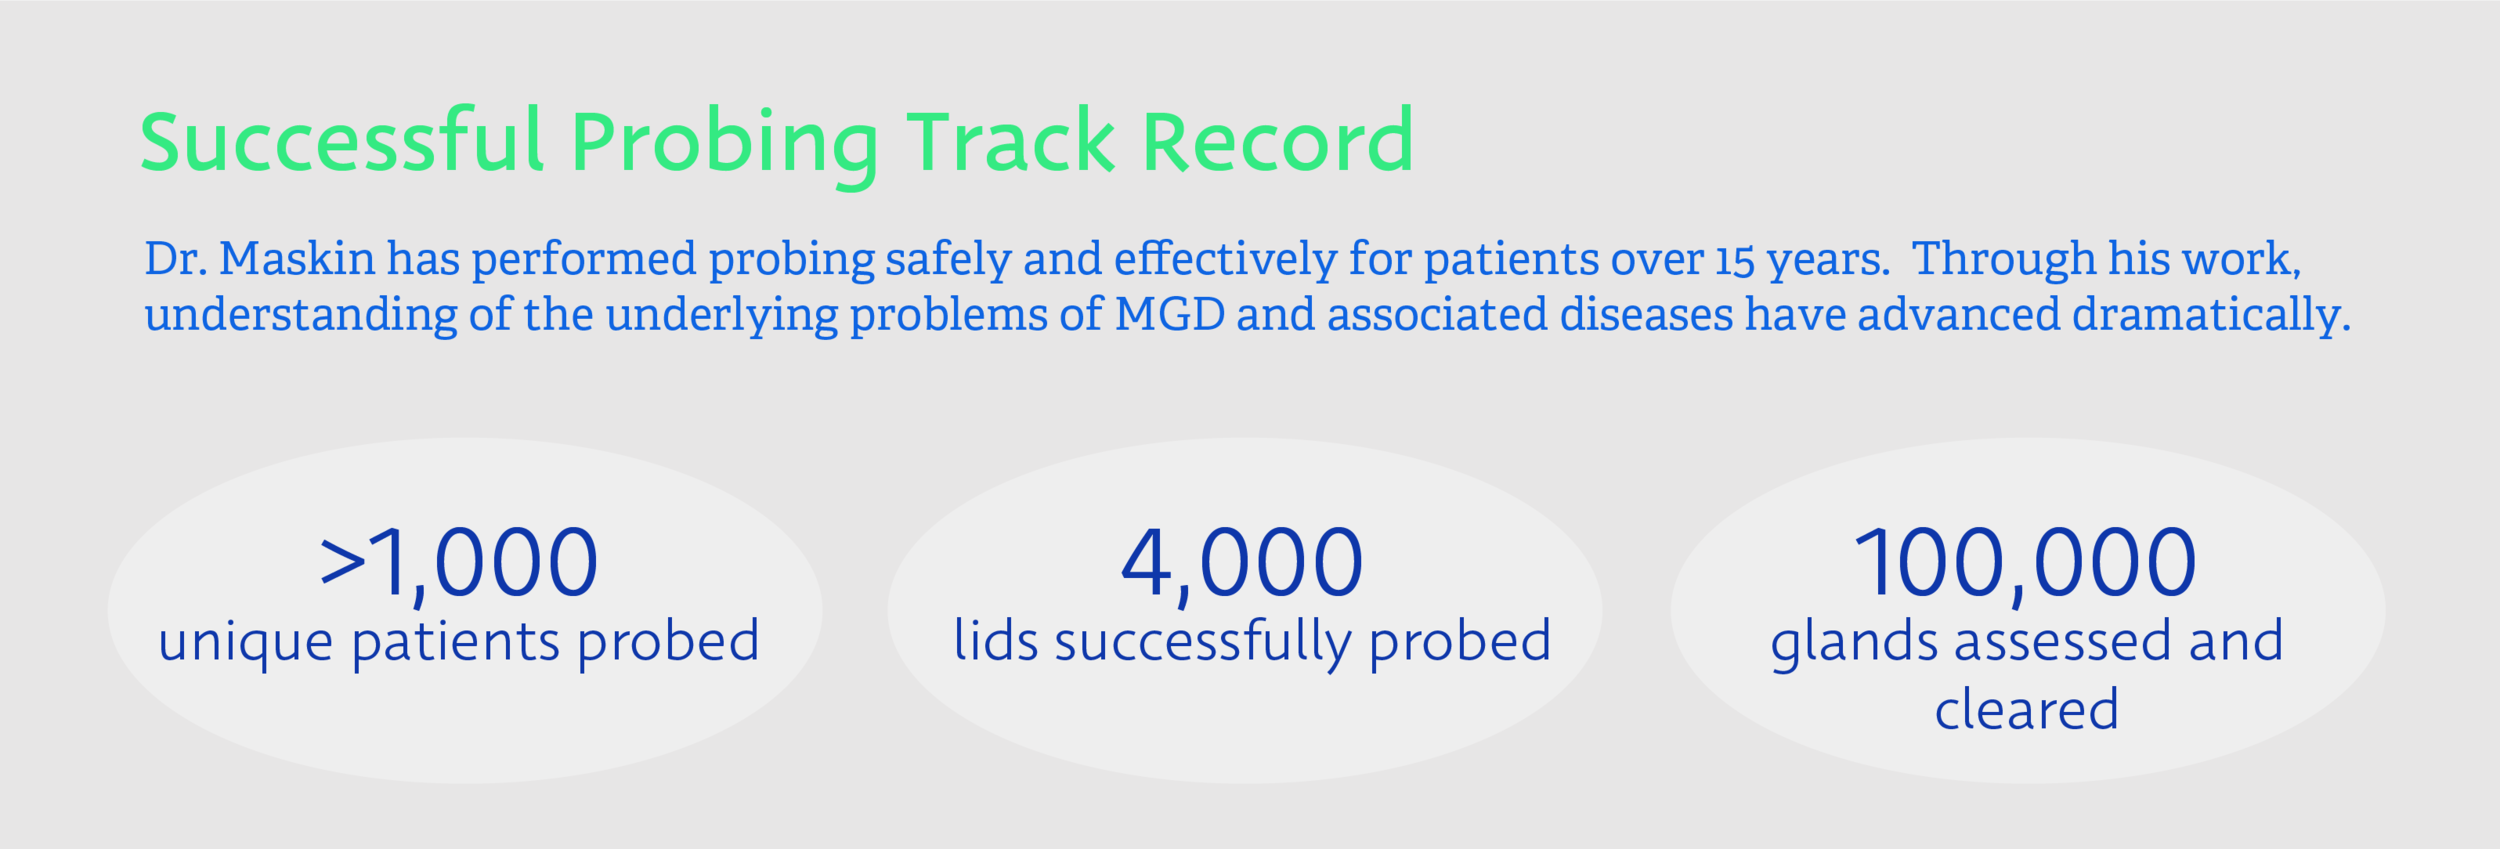 Successful Probing Track Record: Dr. Maskin has successfully and safely performed the Maskin Meibomian Gland Probing Procedure on over 1,000 patients, 4,000 lids, and 100,000 glands in the more than 15 years since he first targeted Meibomian Glands as an important piece of the dry eye puzzle. Through his work, understanding of the underlying problems of MGD and associated diseases have advanced dramatically.